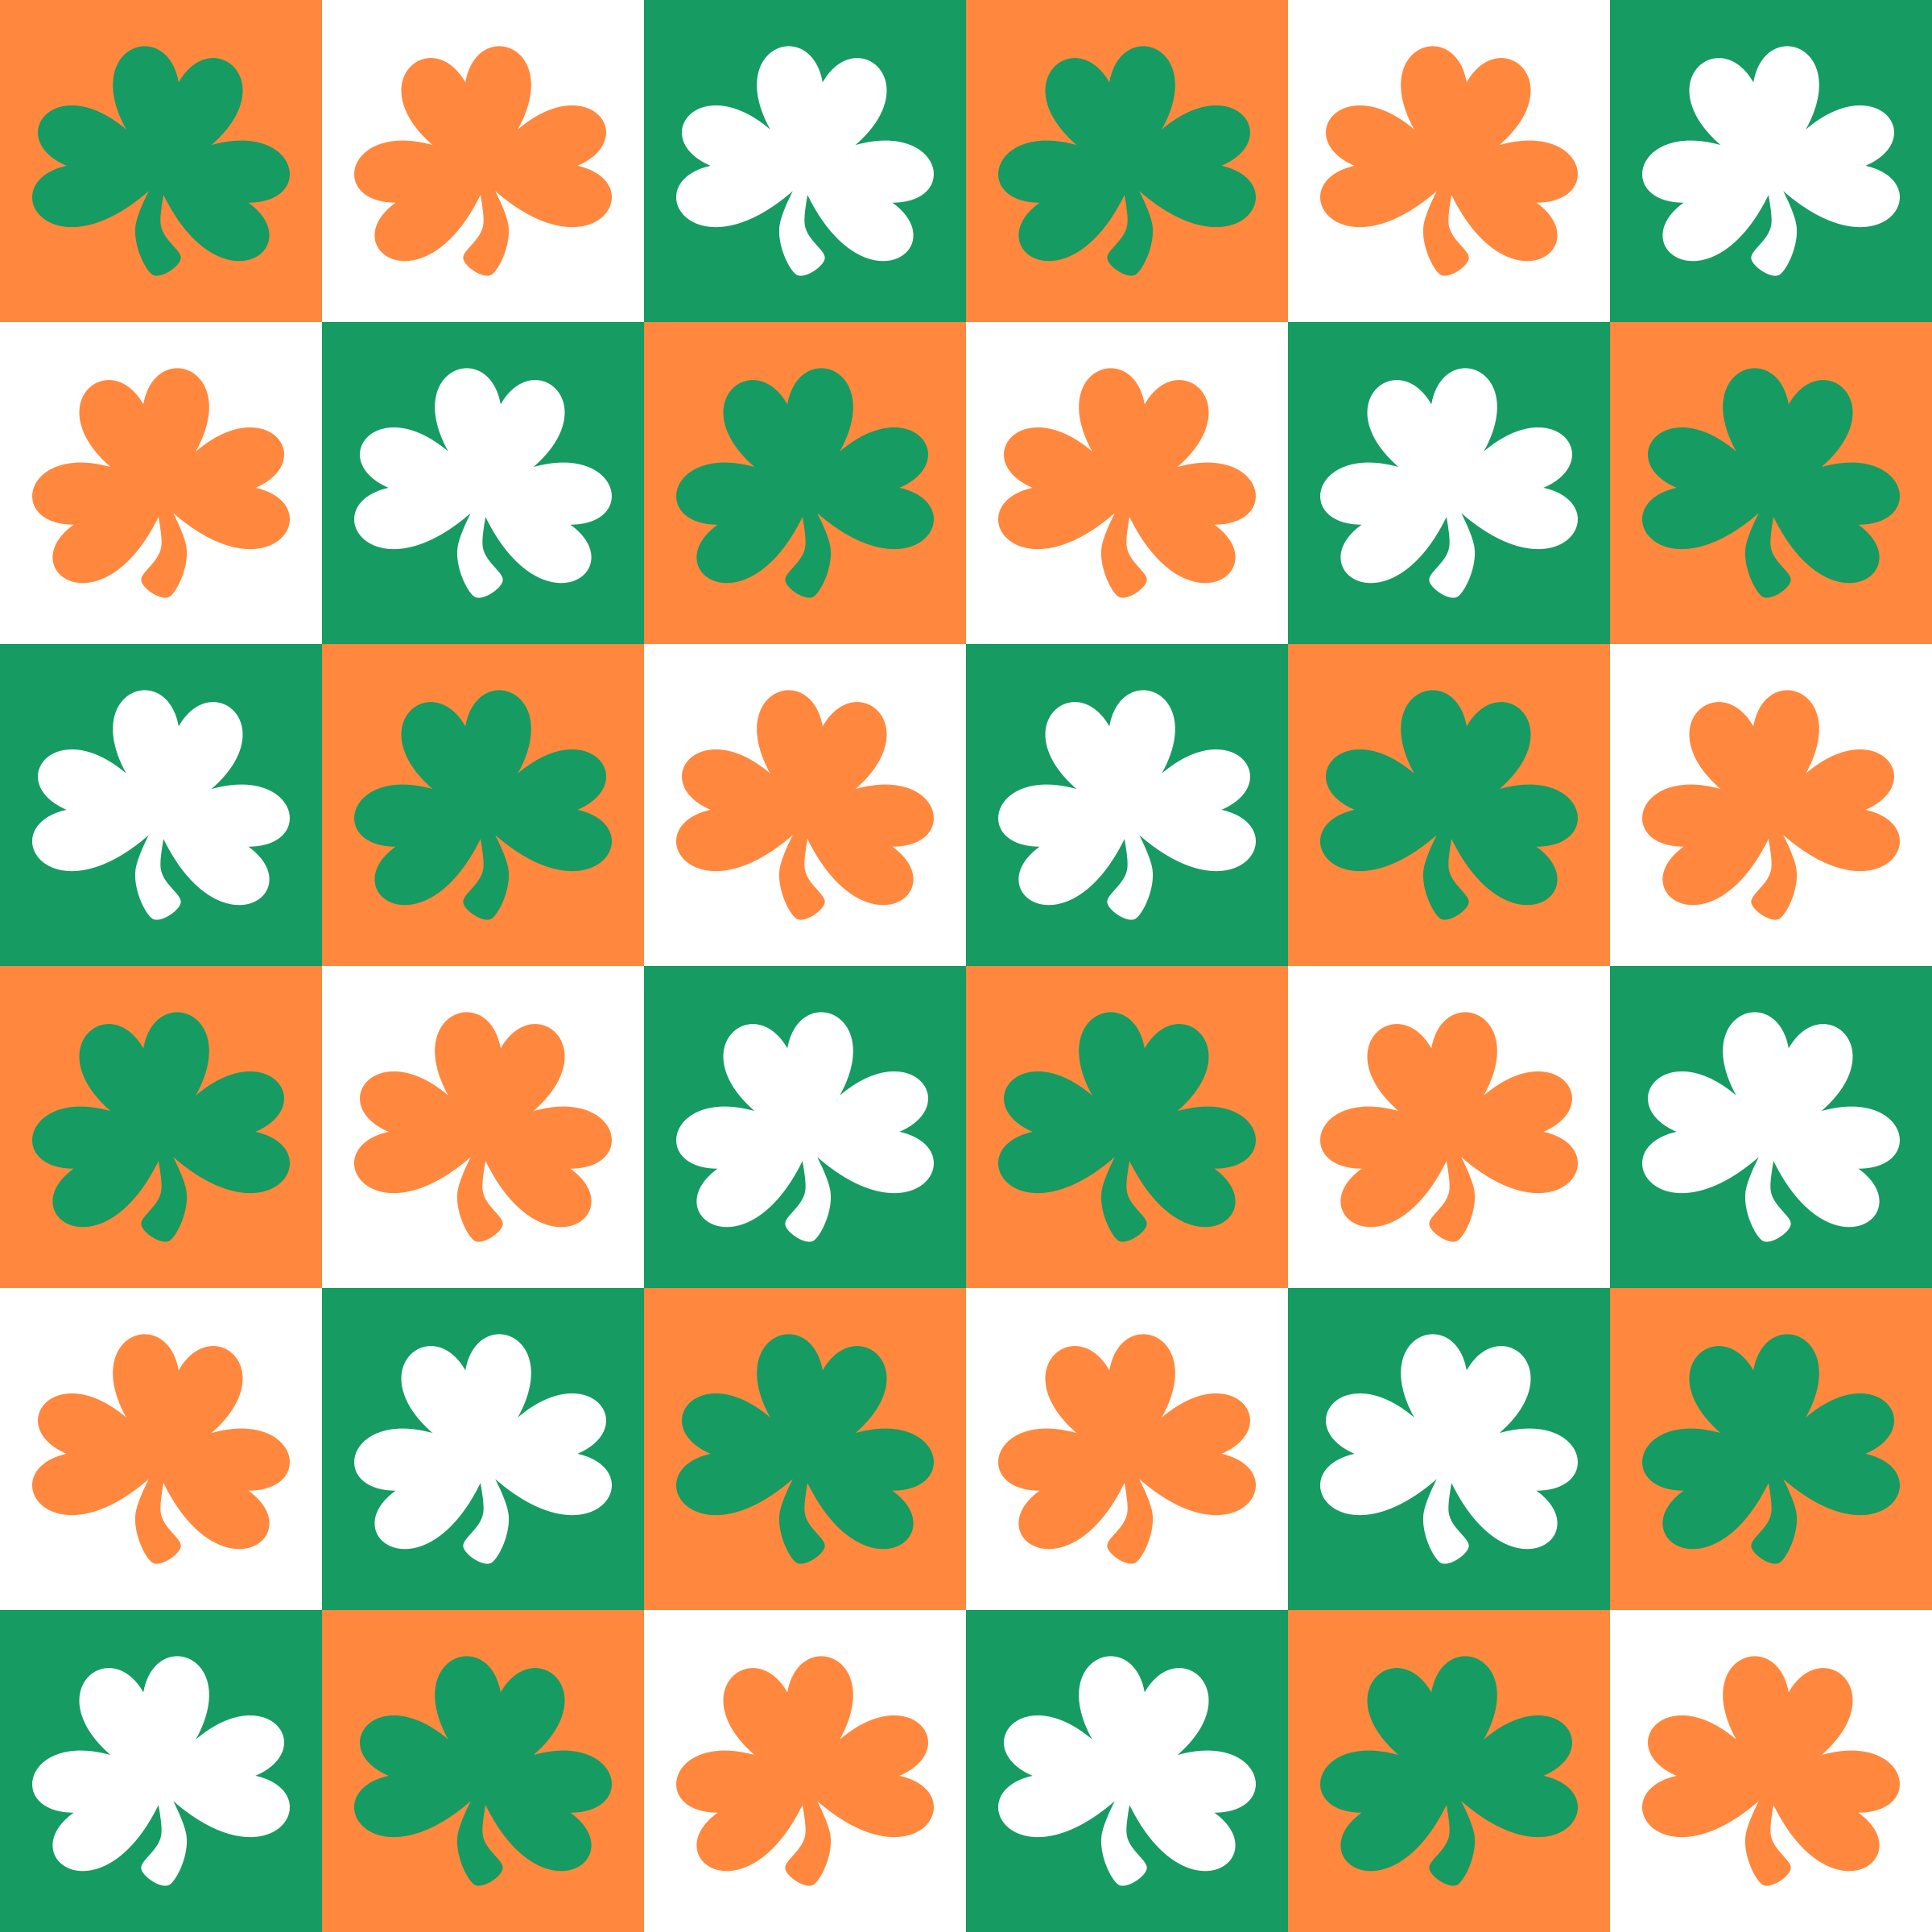 Ireland pattern by Firkin